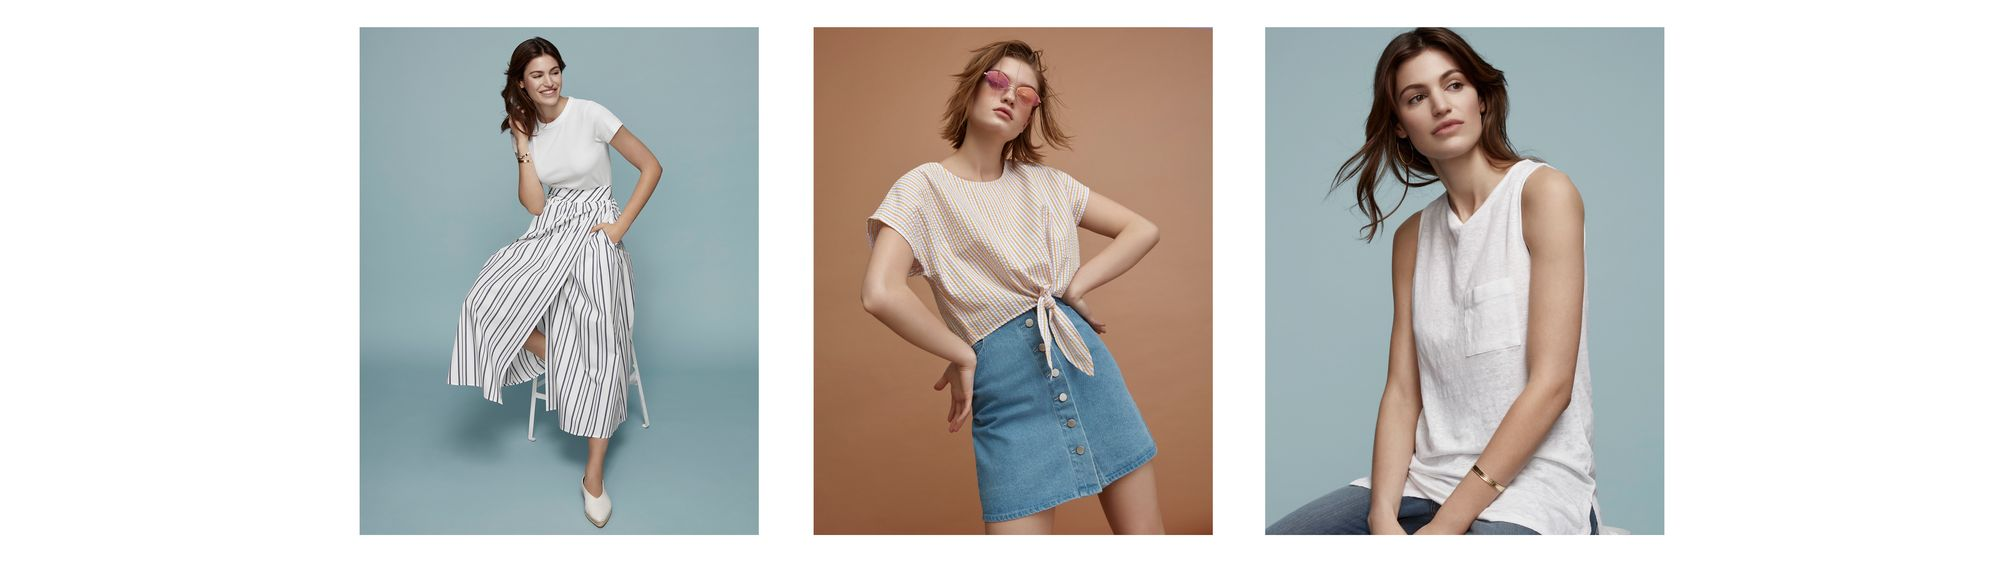 ef8b0080baf79 In finishing off your casual-chic looks for warm weather, don't hesitate to  pair these pieces with a summery top like a fluid cami, a knotted top, ...